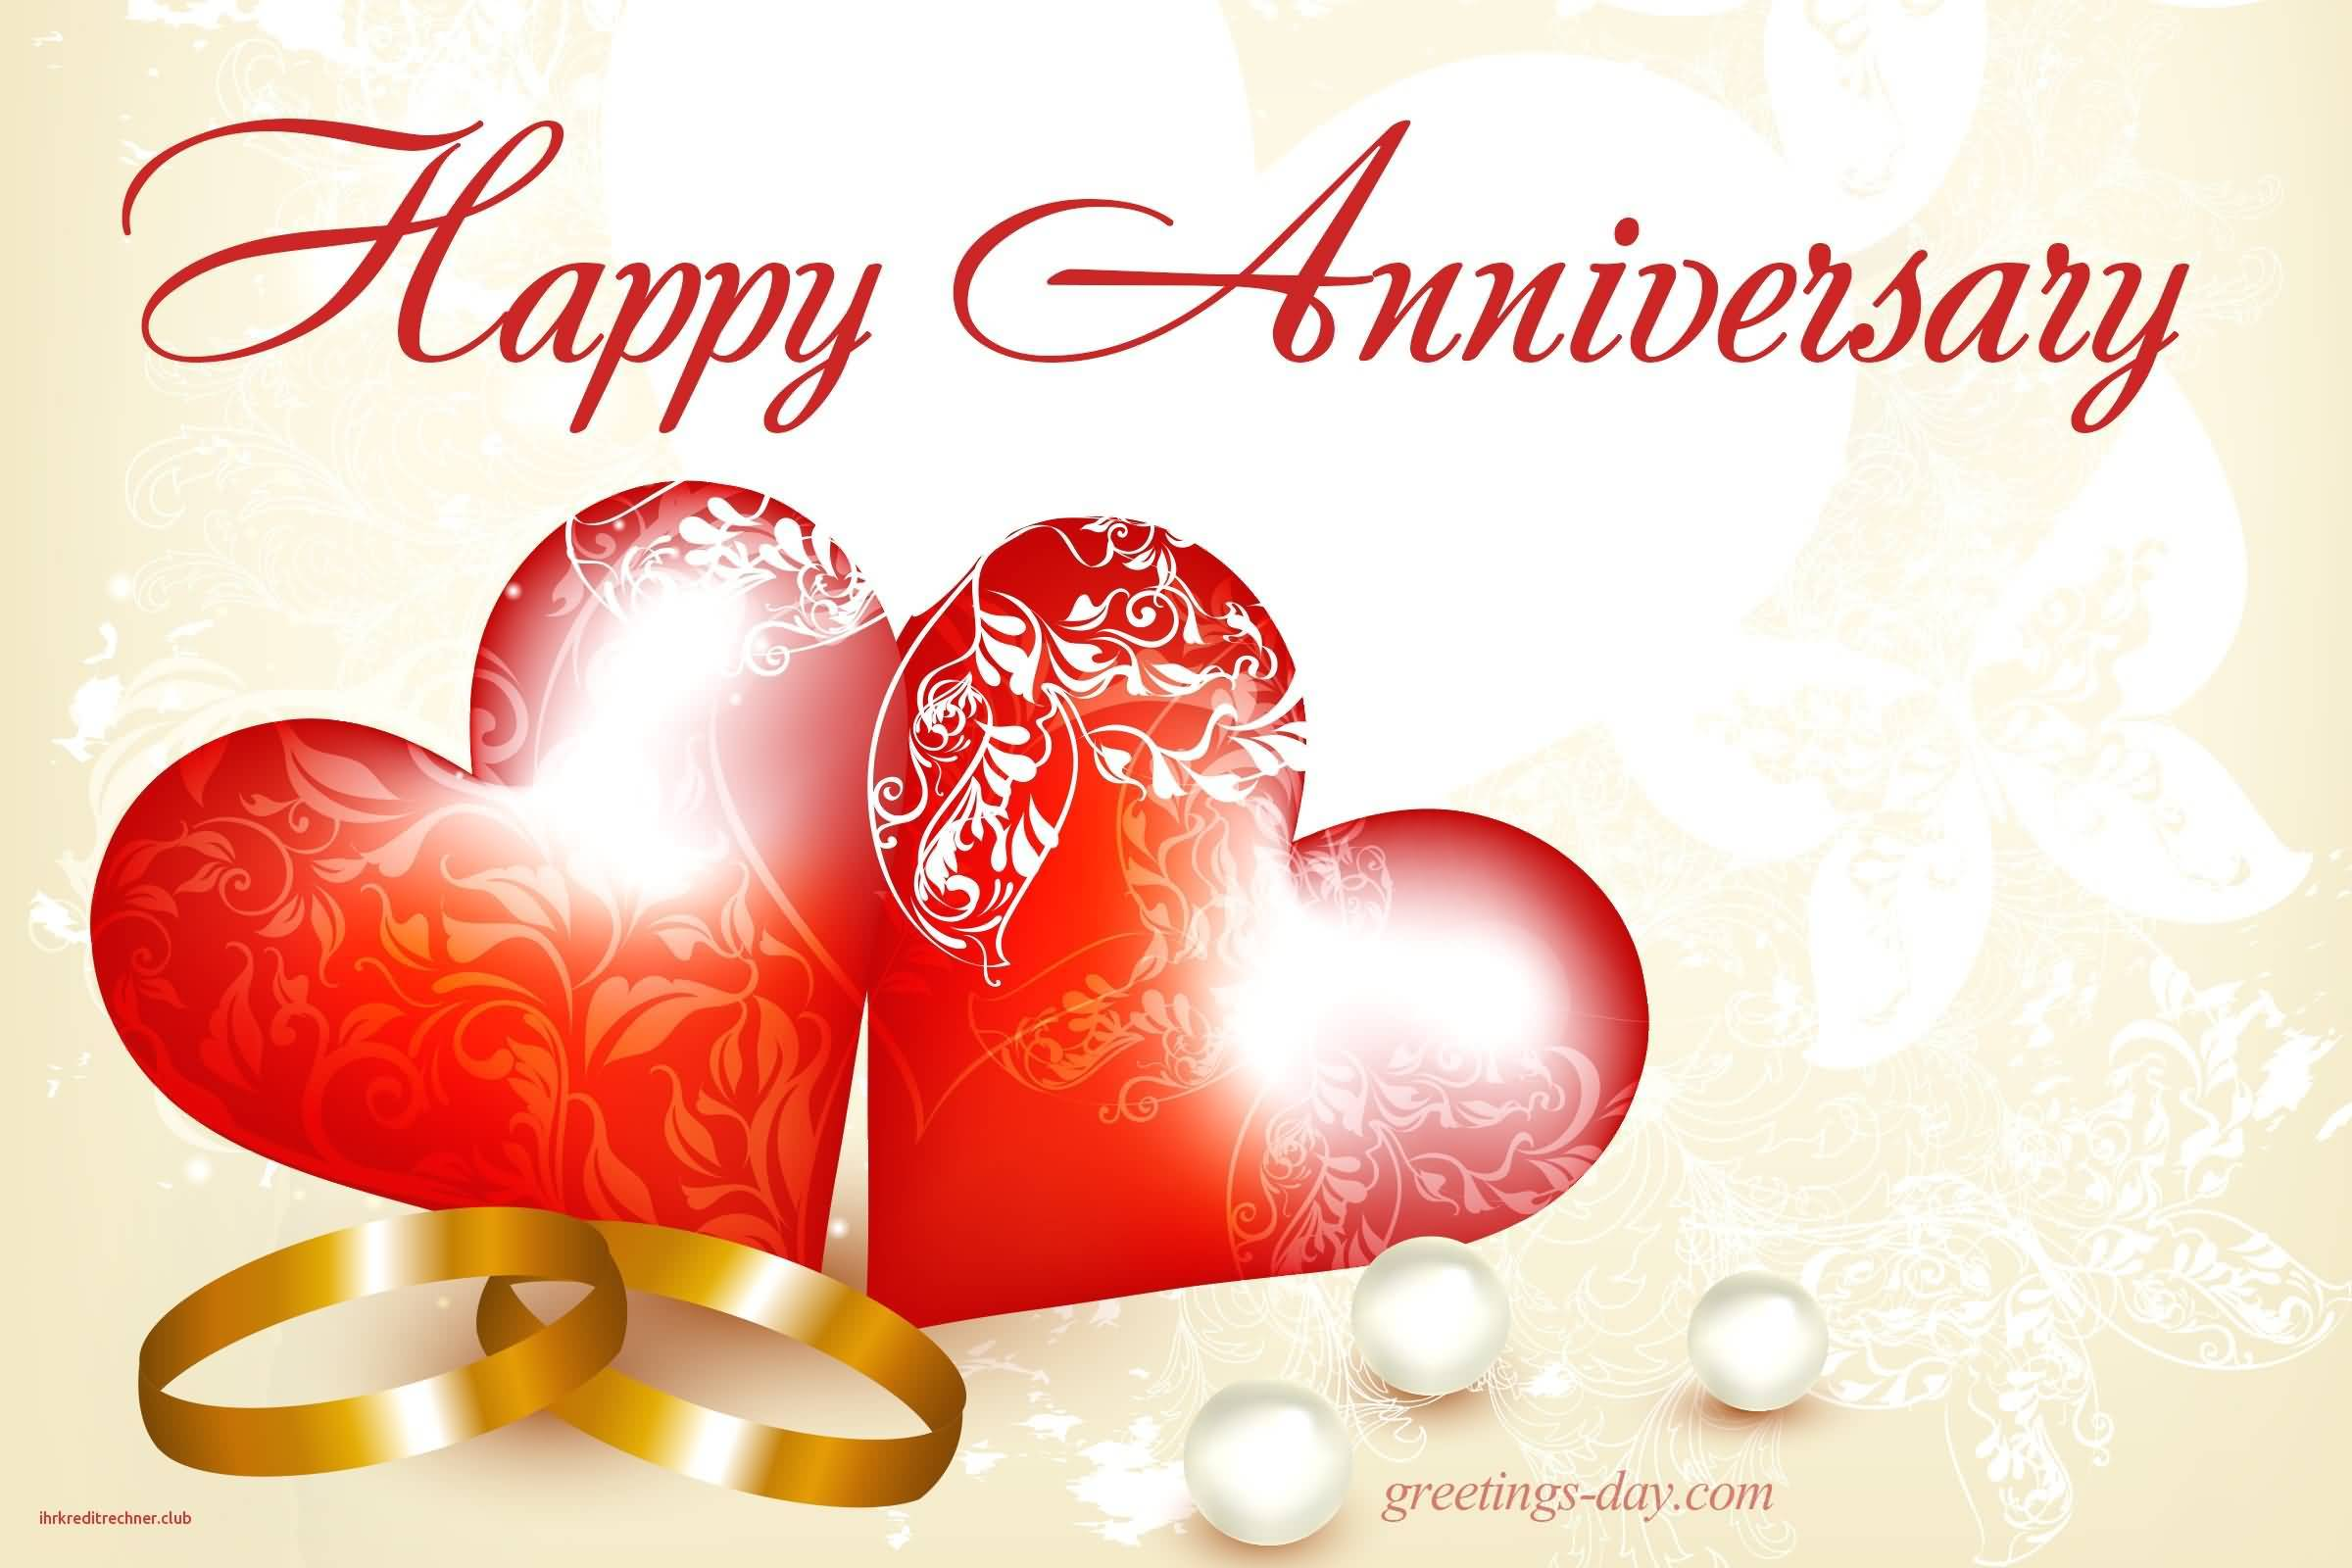 Happy Anniversary Wedding Wishes Images Free Download